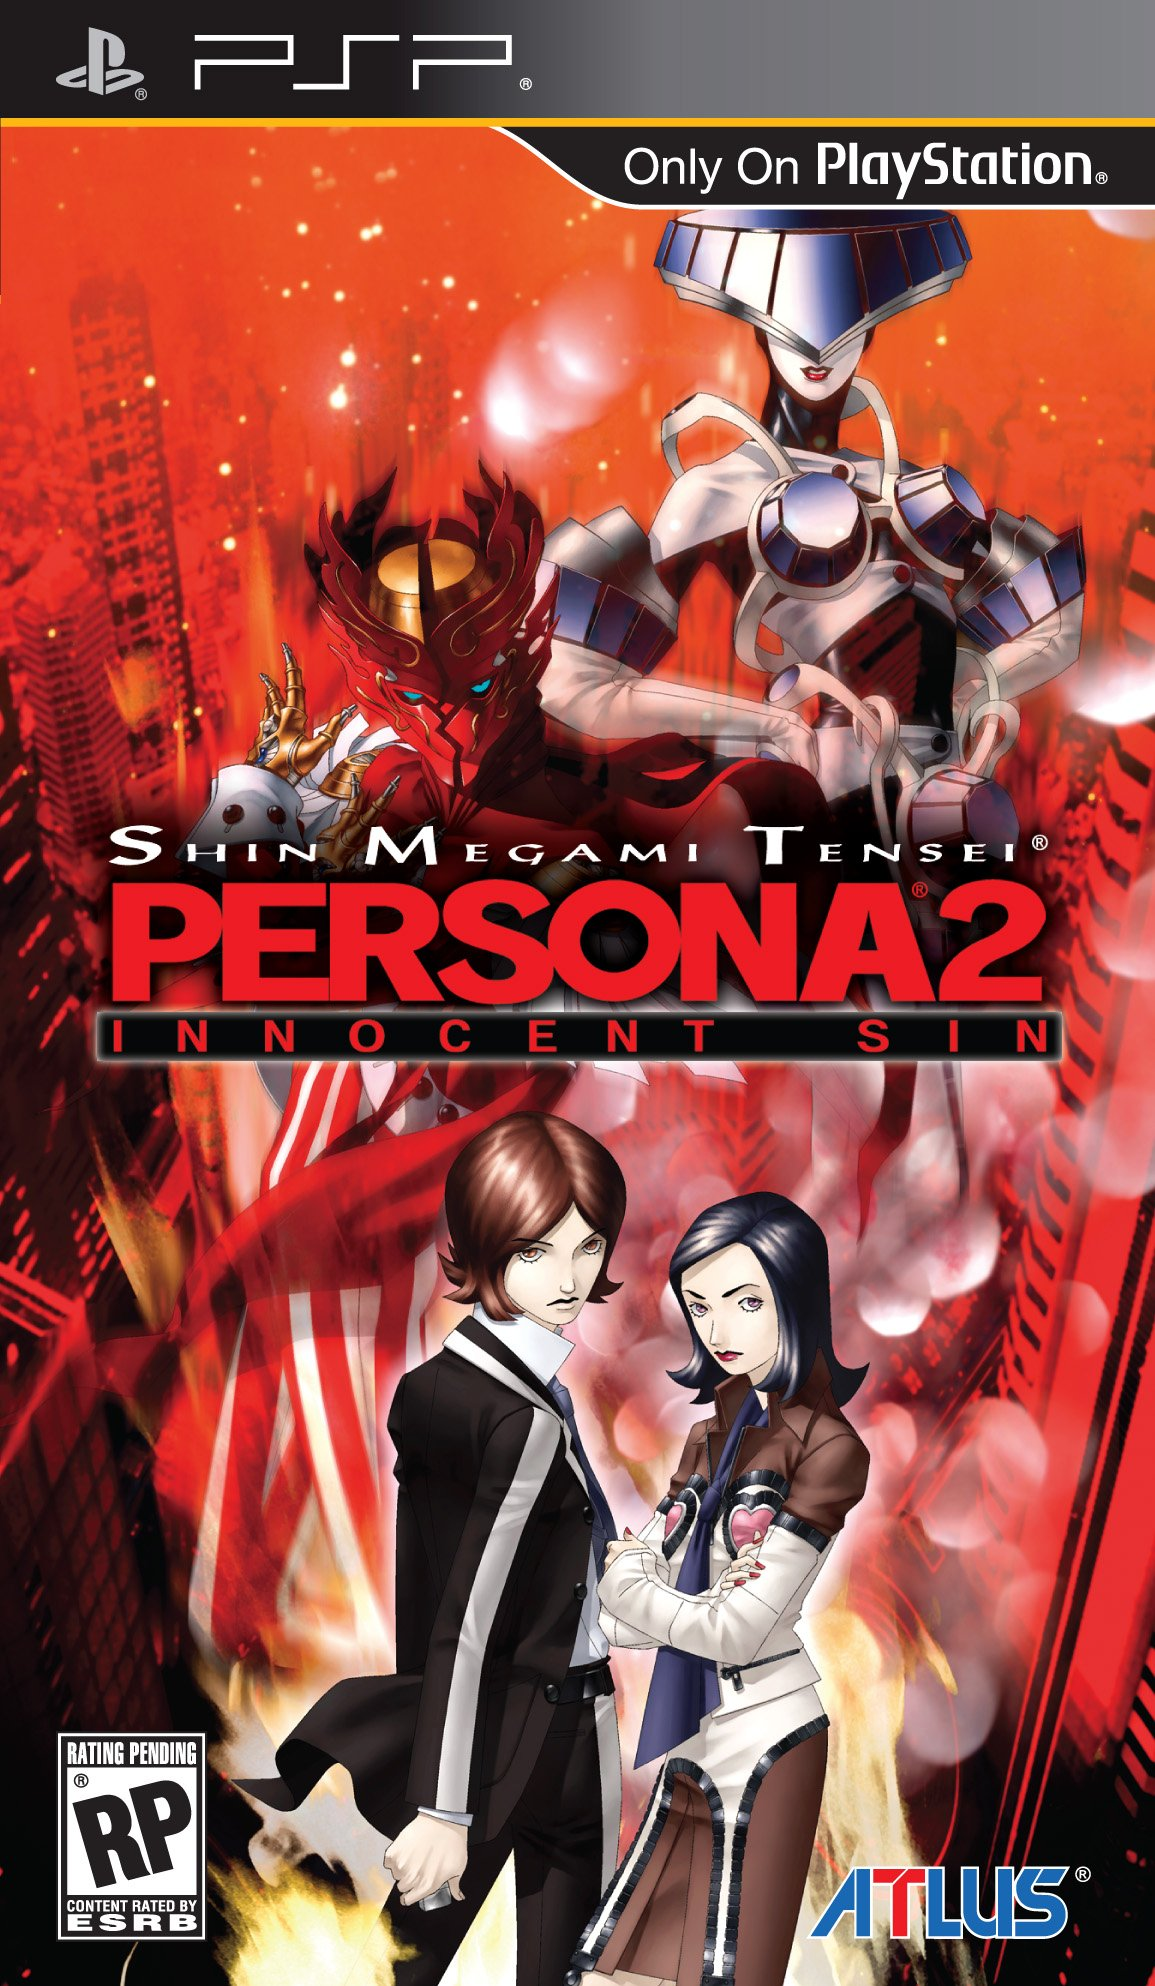 Box art - Shin Megami Tensei: Persona 2: Innocent Sin